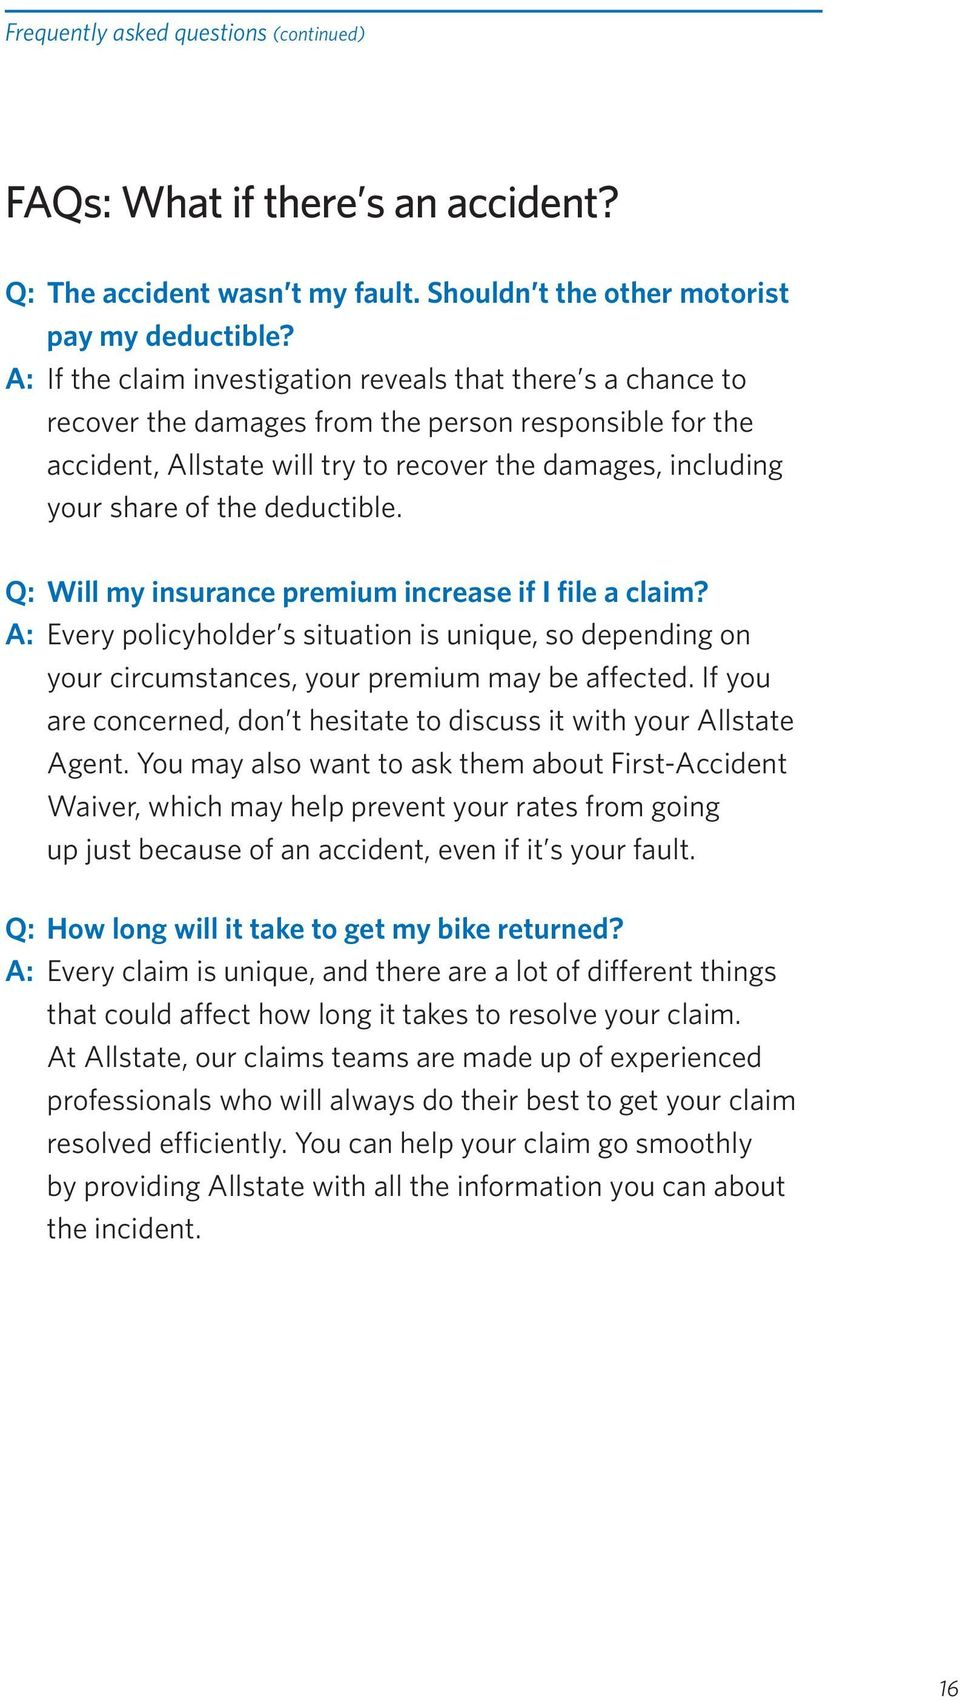 deductible. Q: Will my insurance premium increase if I file a claim? A: Every policyholder s situation is unique, so depending on your circumstances, your premium may be affected.